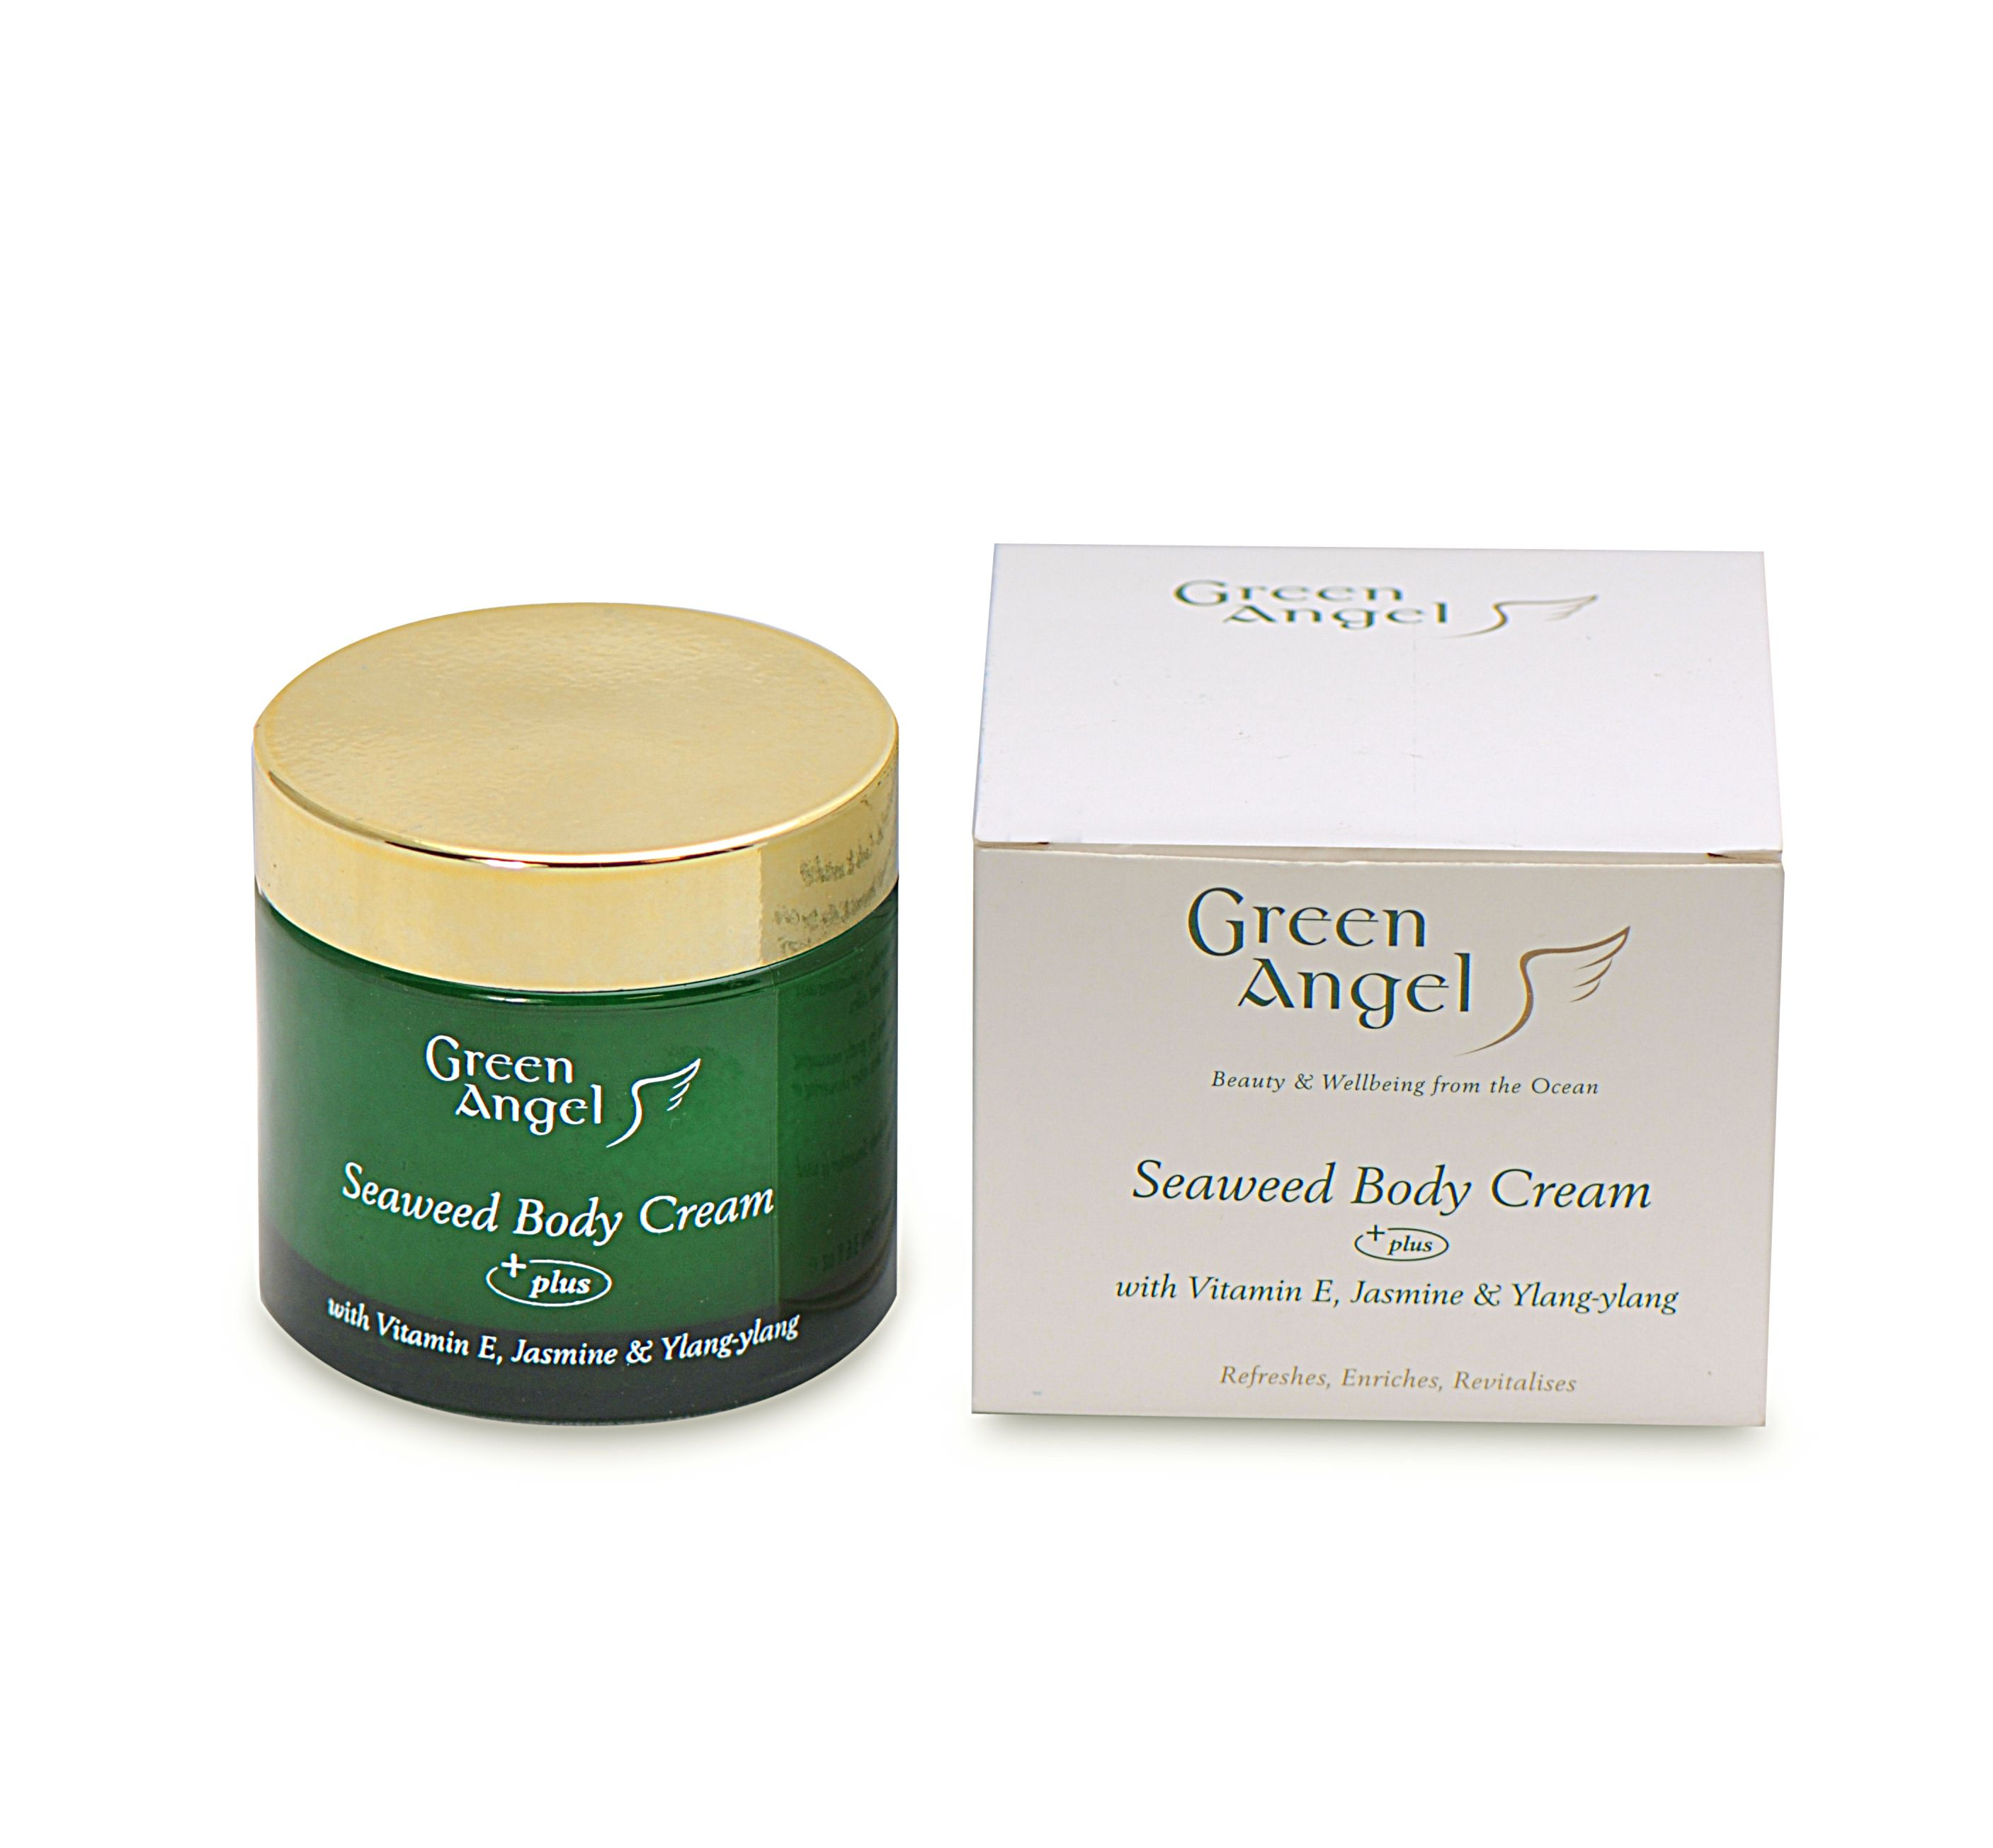 Seaweed Body Cream with Vitamin E, Jasmine & Ylang-ylang.Green Angel Pure indulgence Body cream is a unique product which has taken the therapeutic and rejuvenative benefits of Irish Seaweed and combined them with vitamin E and high quality essential oils such as Jasmine and Ylang-ylang each with their individual attributes to give a rich luxurious product.